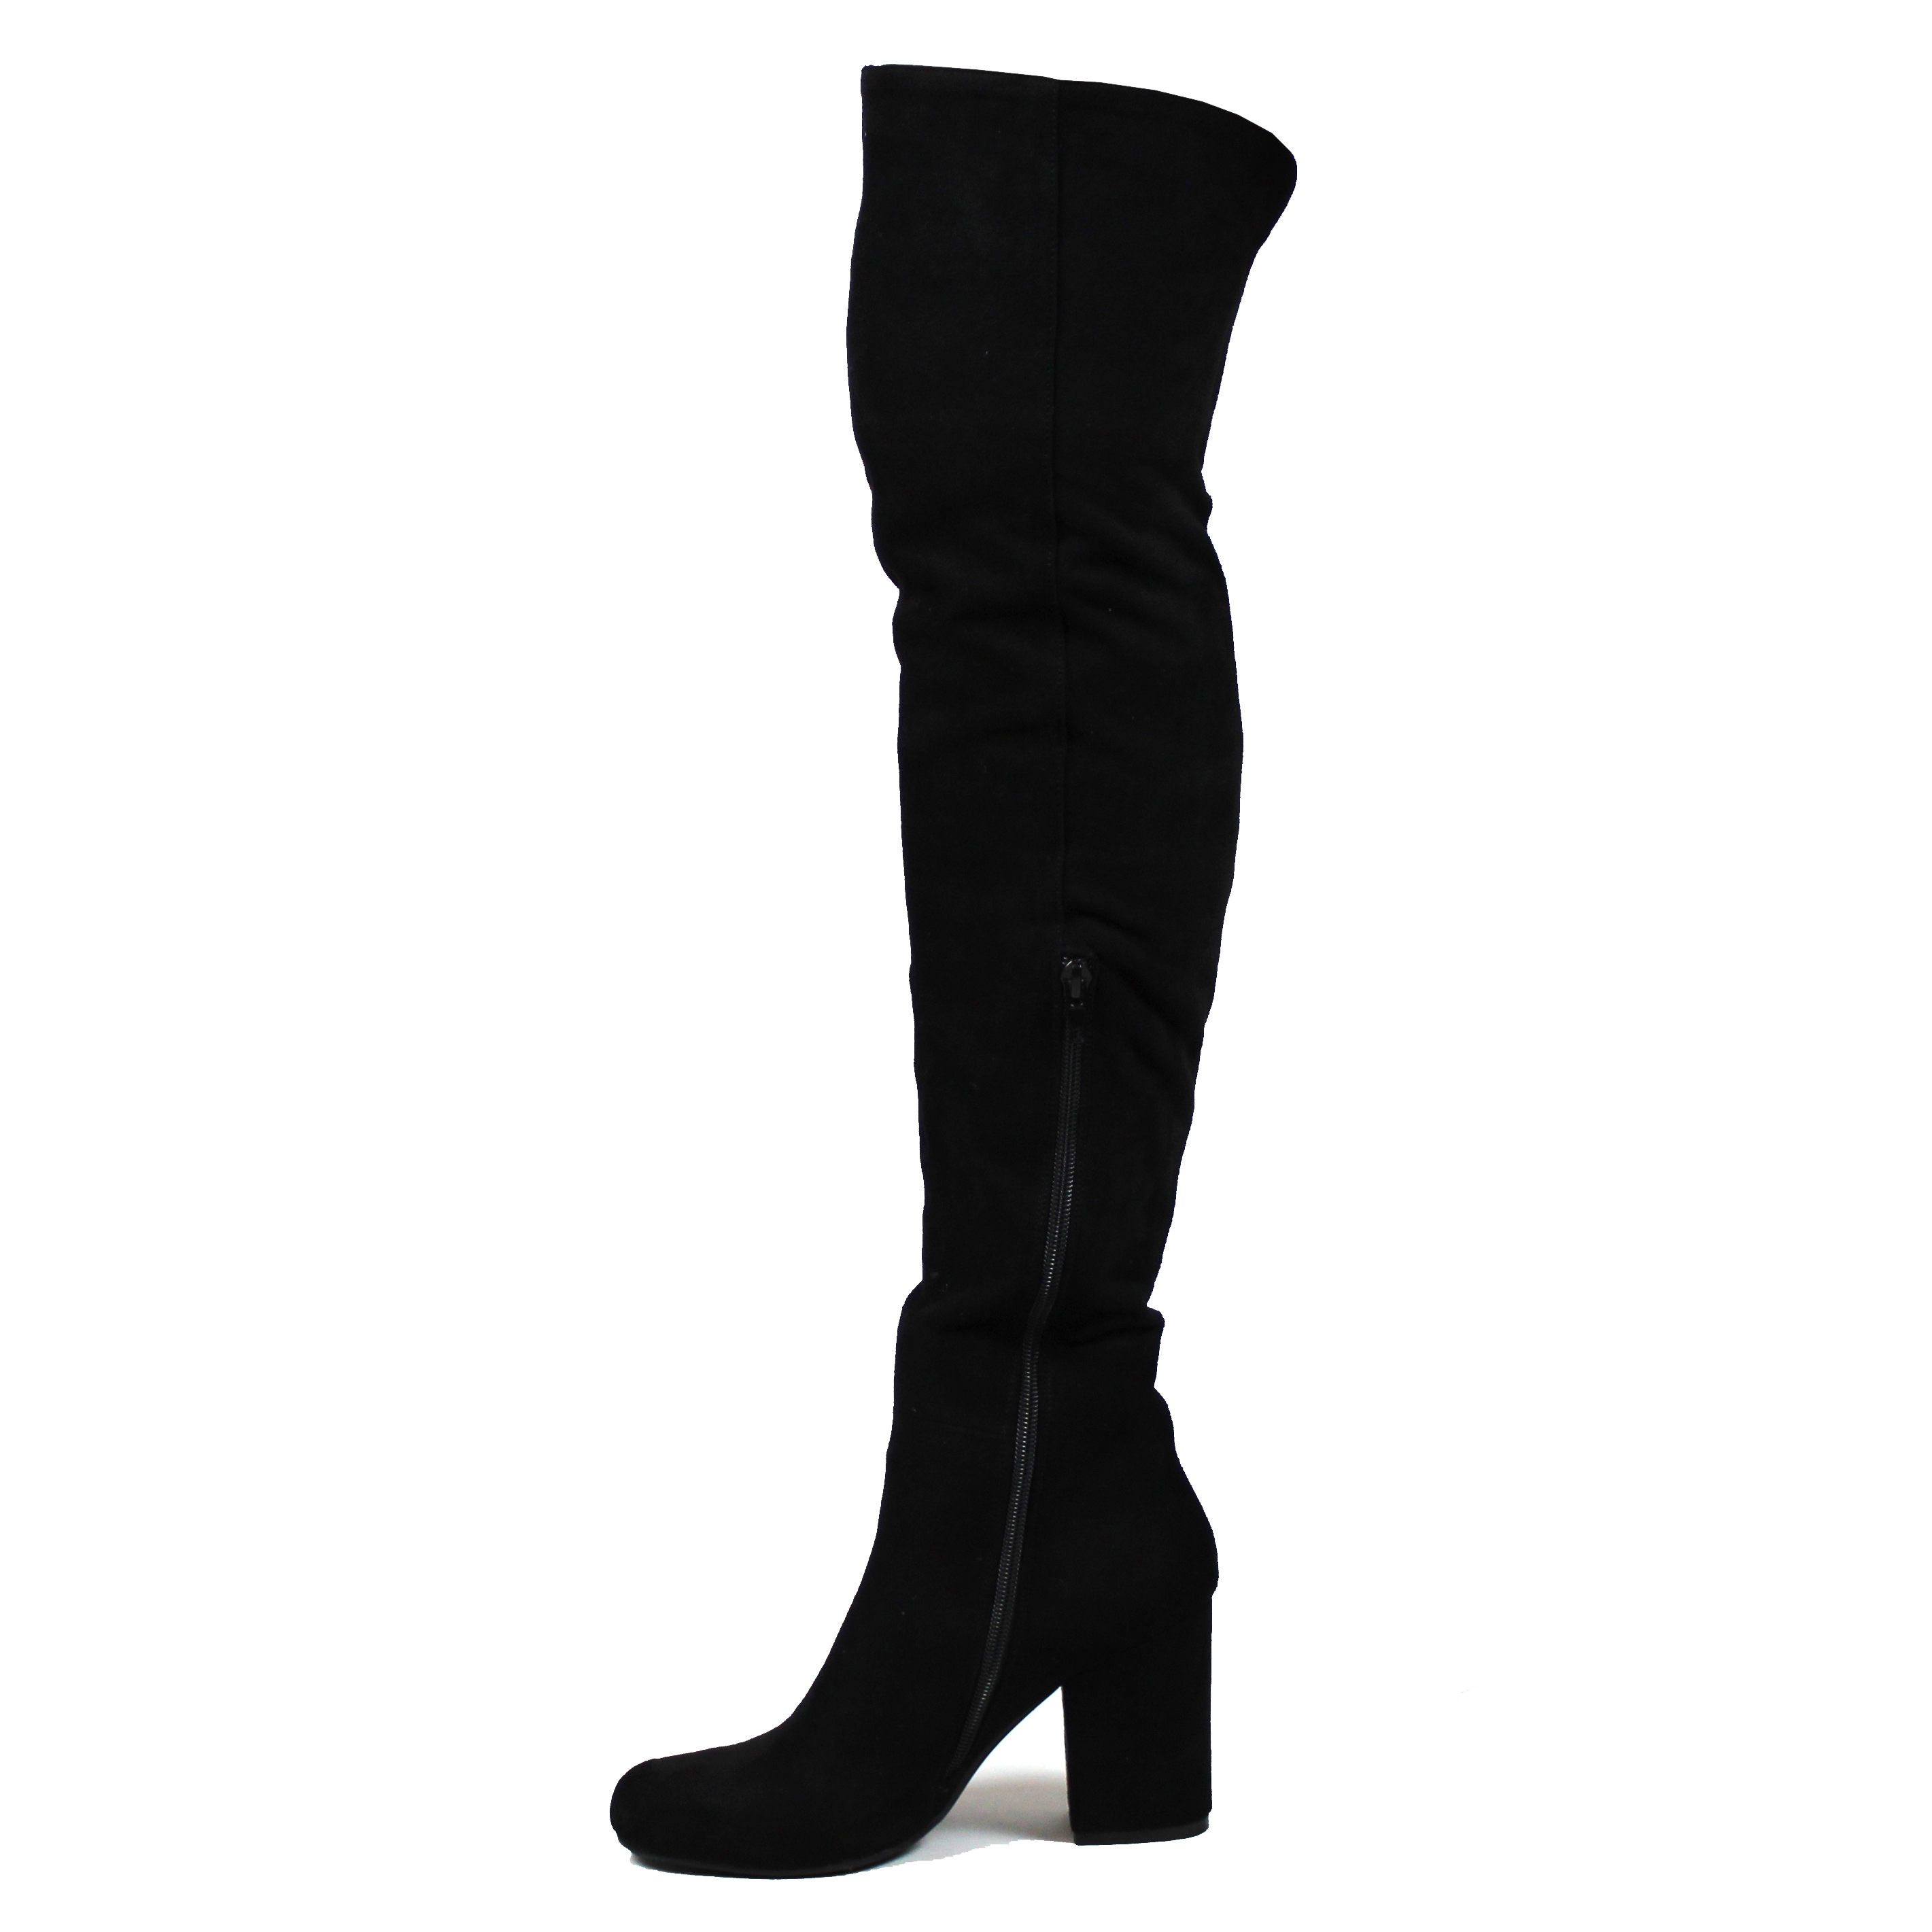 368d2be49a0 Womens Low Block Heel Thigh High Slouch Fashion Winter Over Knee ...